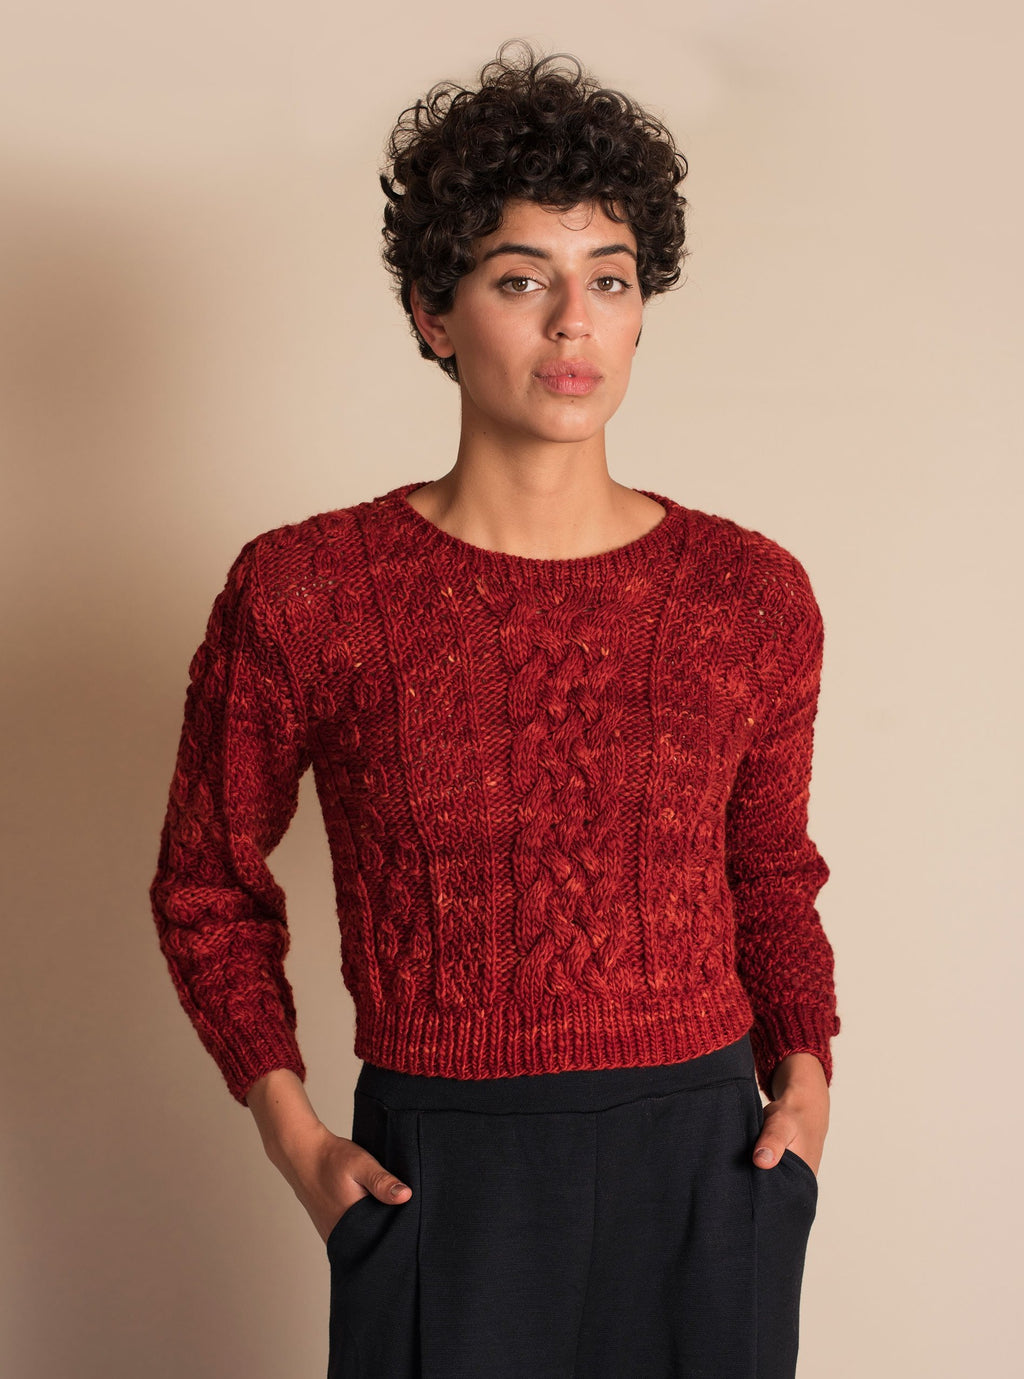 CANASTA Crop Sweater in Red